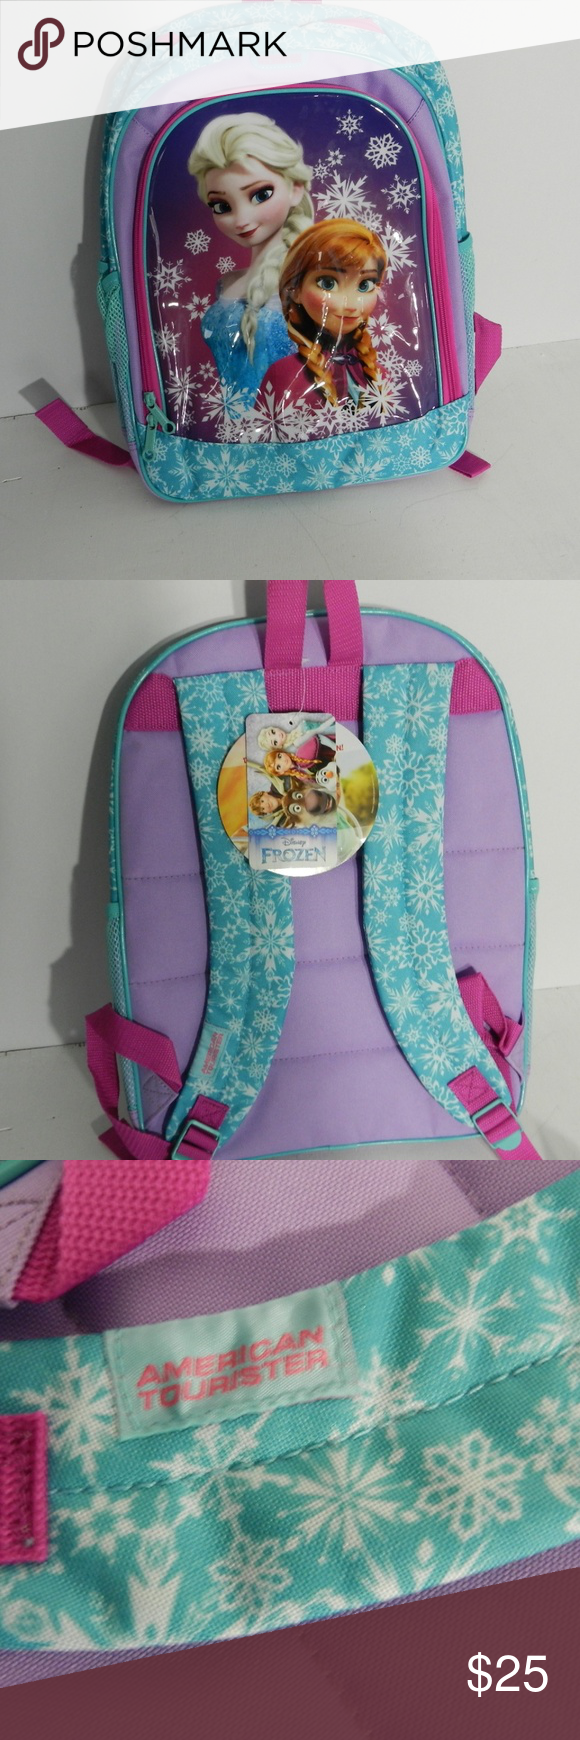 43b3d42383a American Tourister Disney Frozen Backpack NWT You are purchasing a NWT  Disney Frozen backpack. It